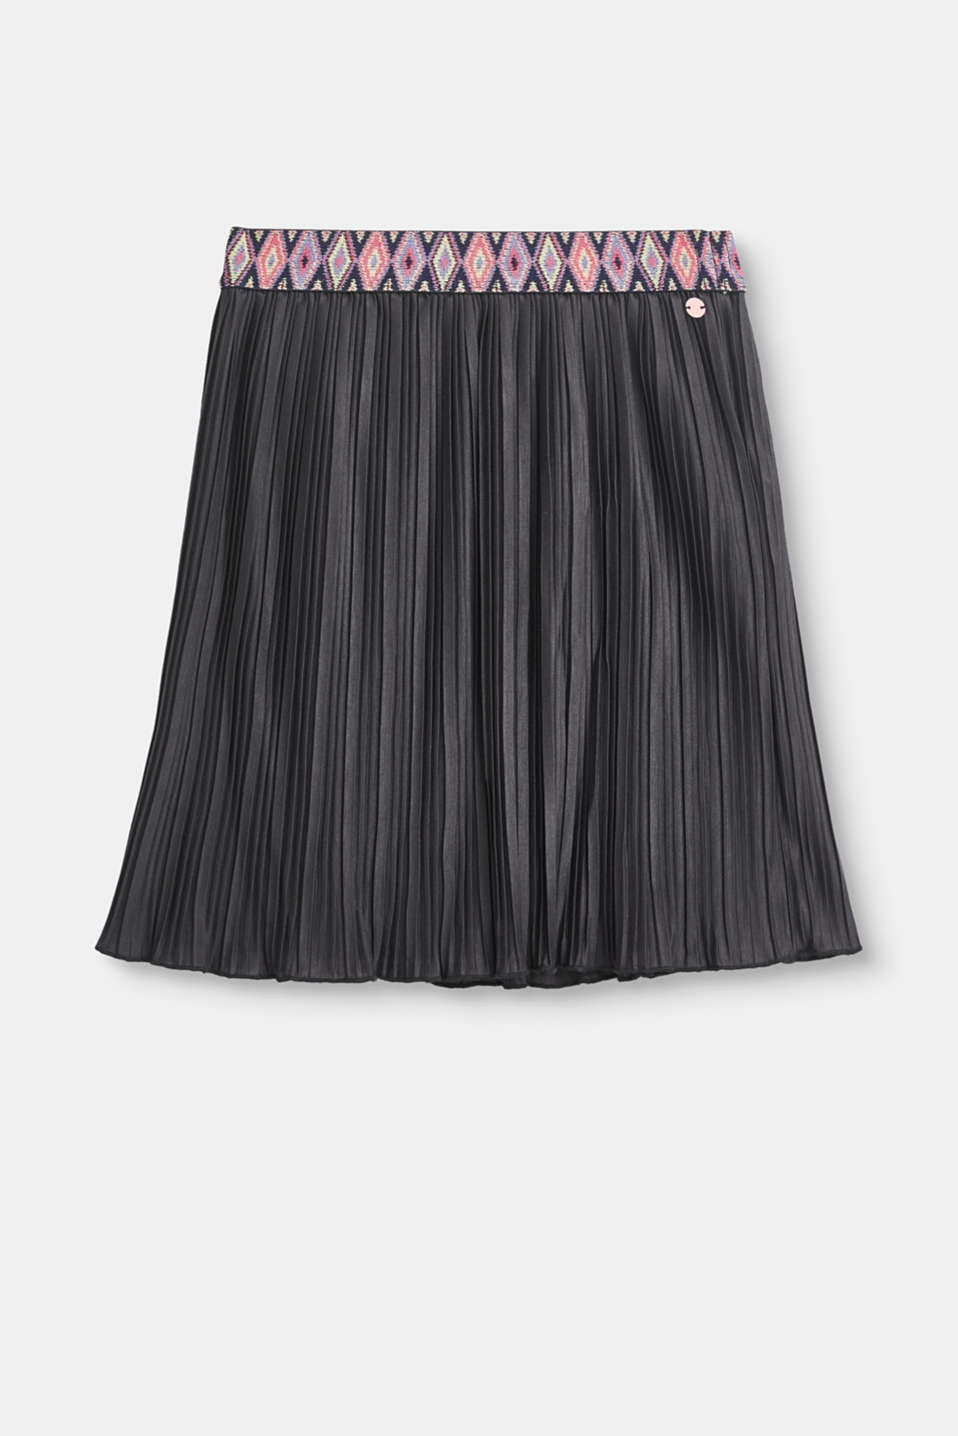 Esprit - Pleated skirt with a decorative elasticated waistband